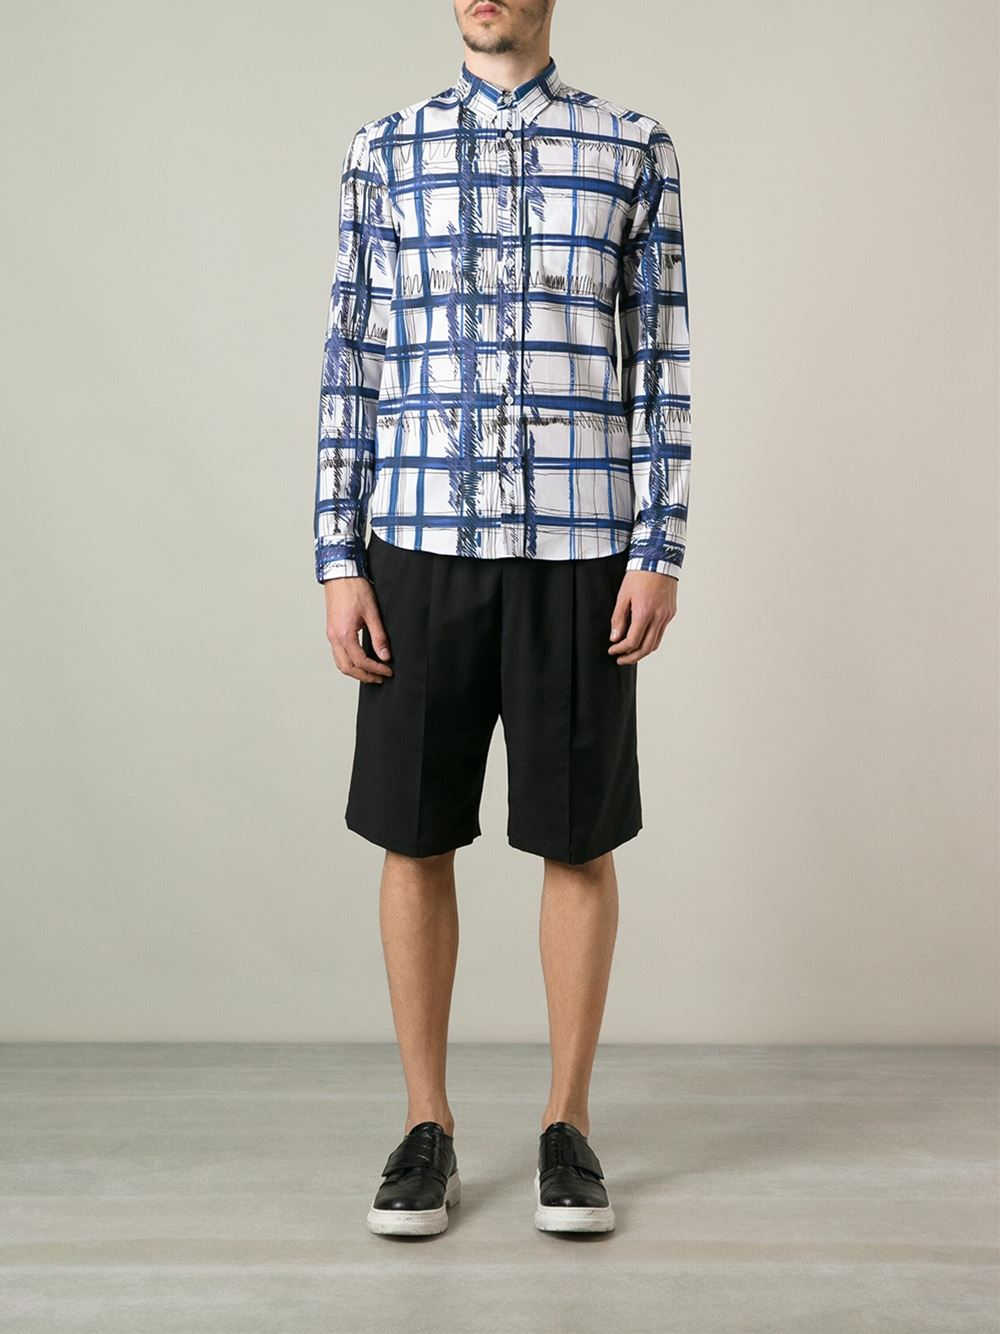 Kenzo 'scribble Check' Shirt - Twist'n'scout - Farfetch.com